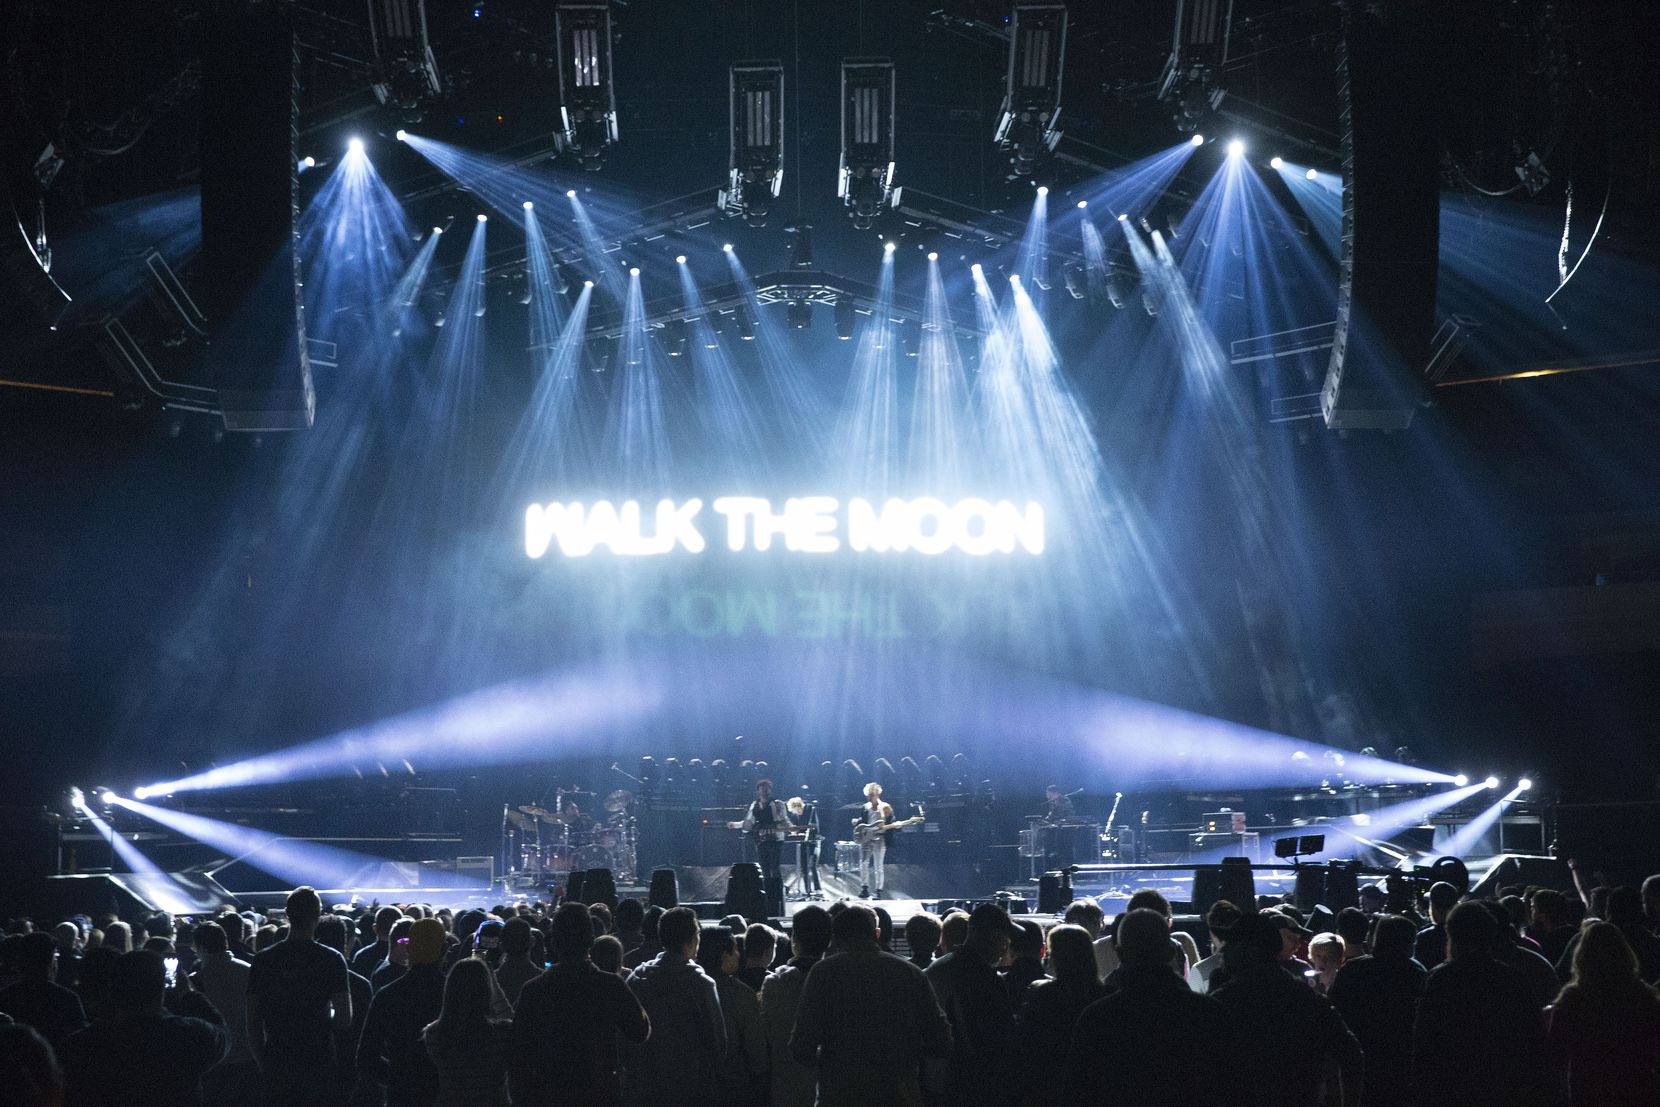 Space Center Houston has a full slate of commemorative activities planned for the 50th anniversary of the moon landing, including a concert headlined by Walk the Moon (shown here at American Airlines Center in Dallas in February 2019) and Phillip Phillips.